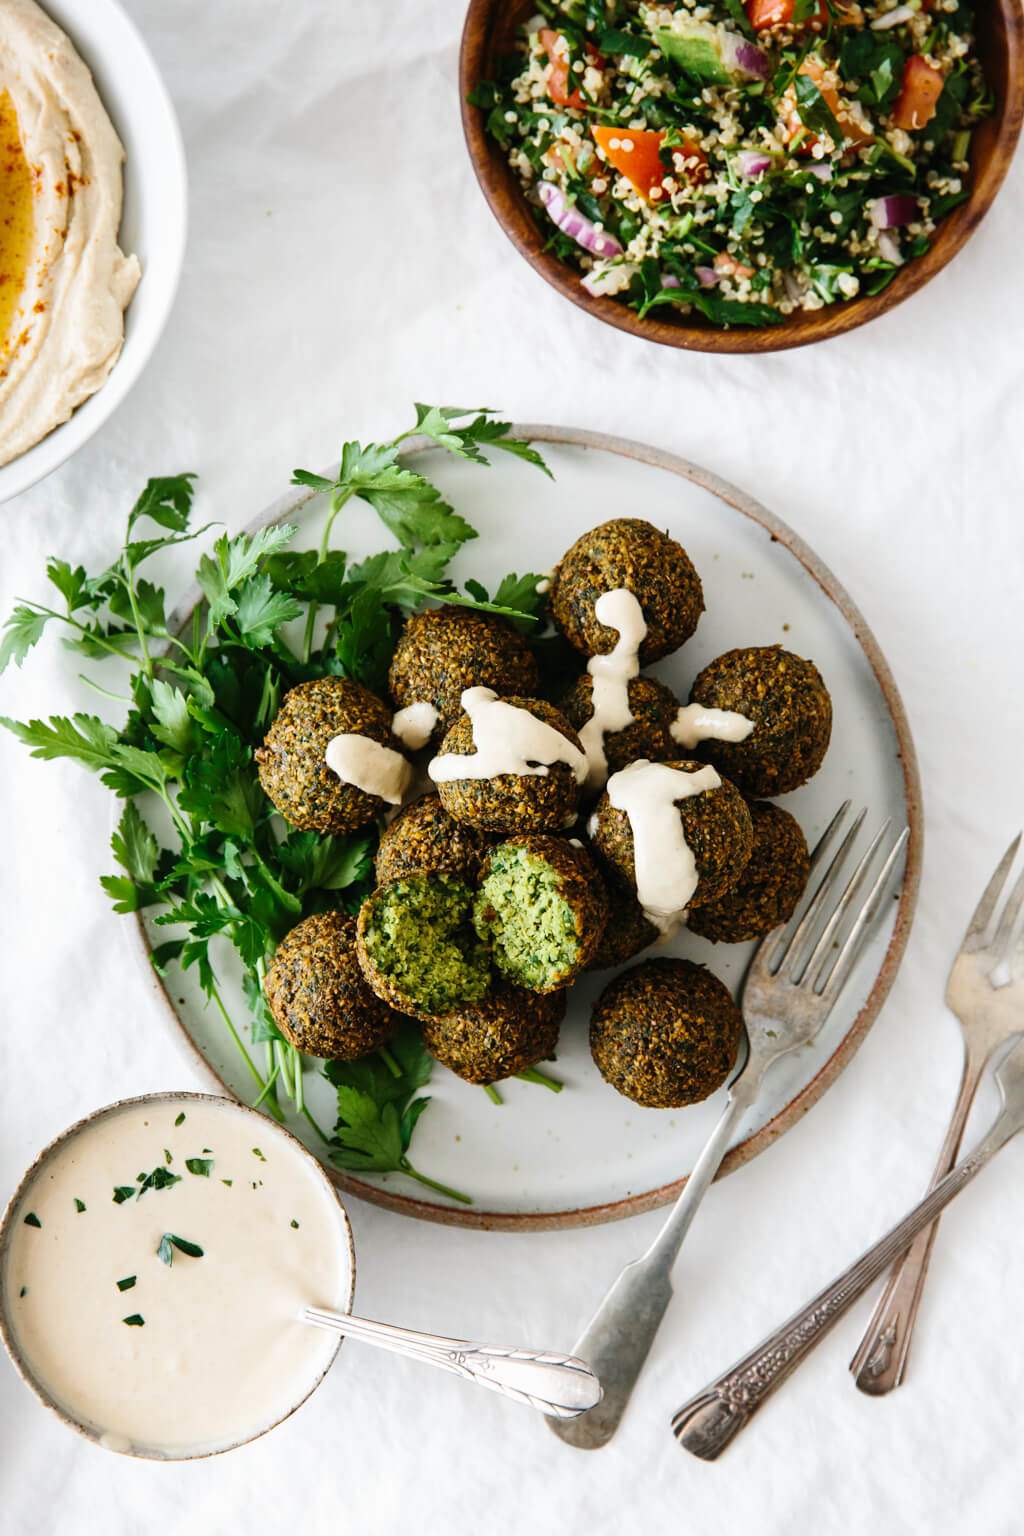 A plate of falafel served up with tahini sauce, hummus and tabbouleh.